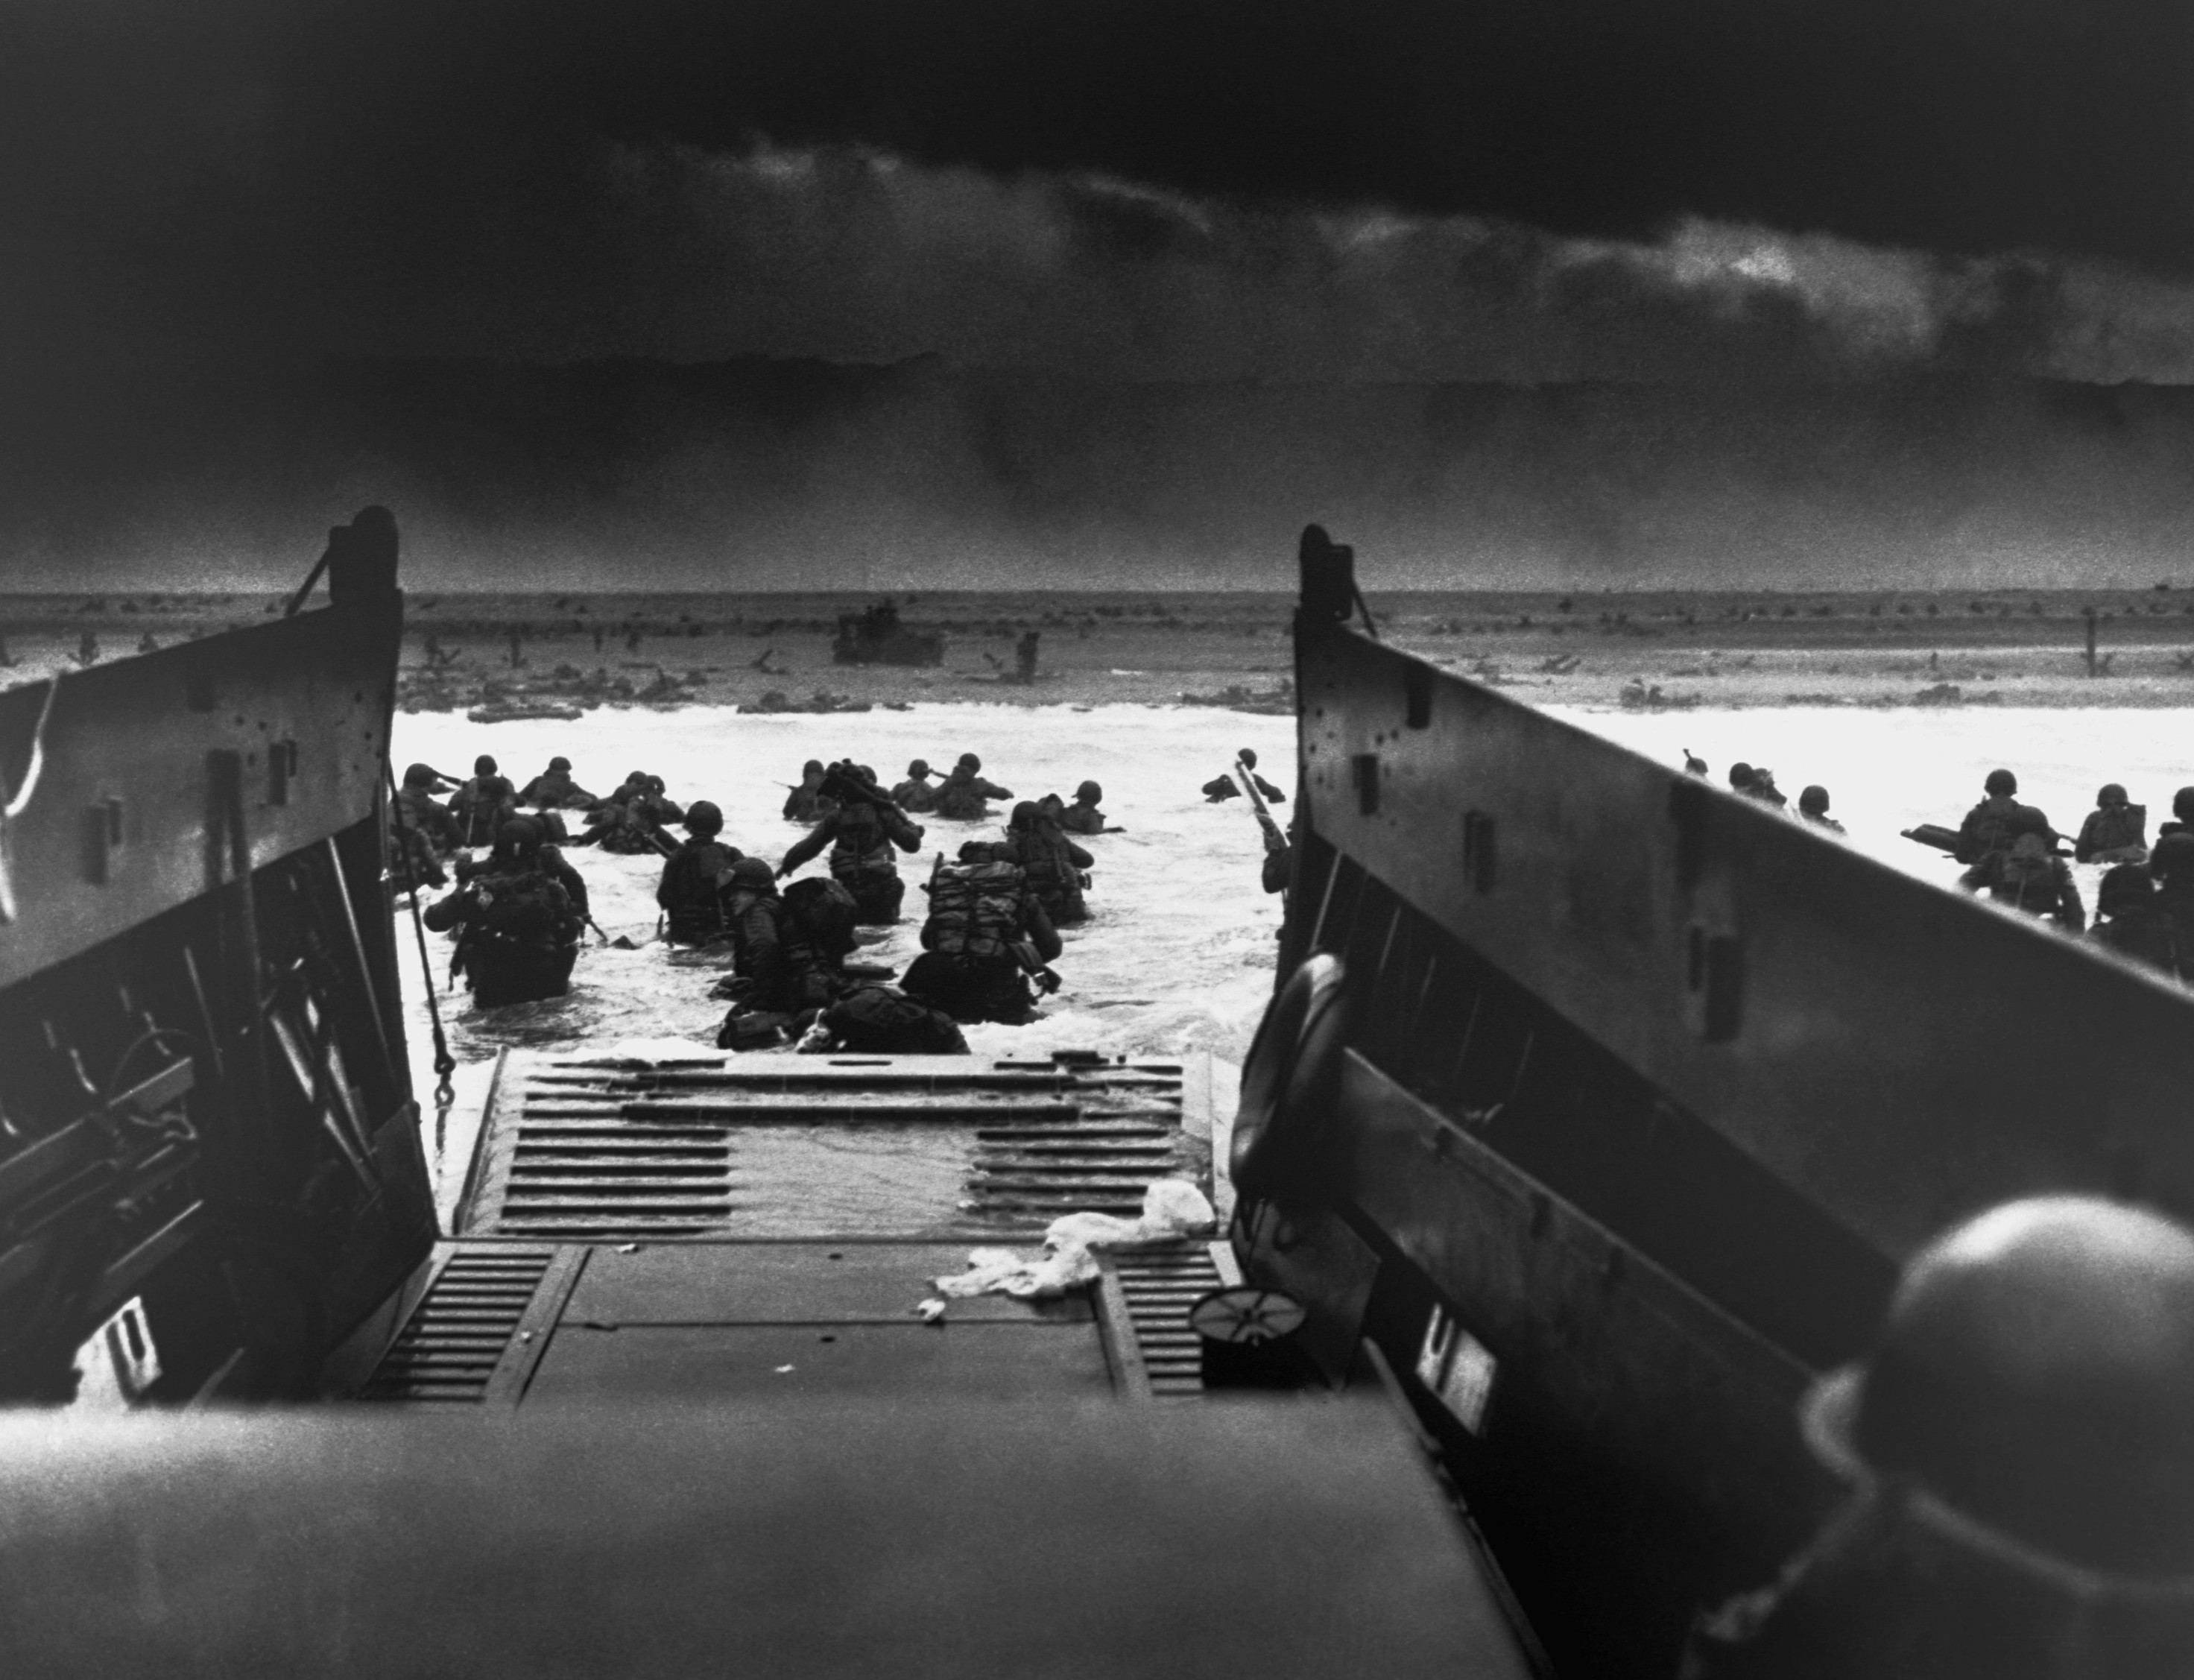 Why is D-Day important in WWII?